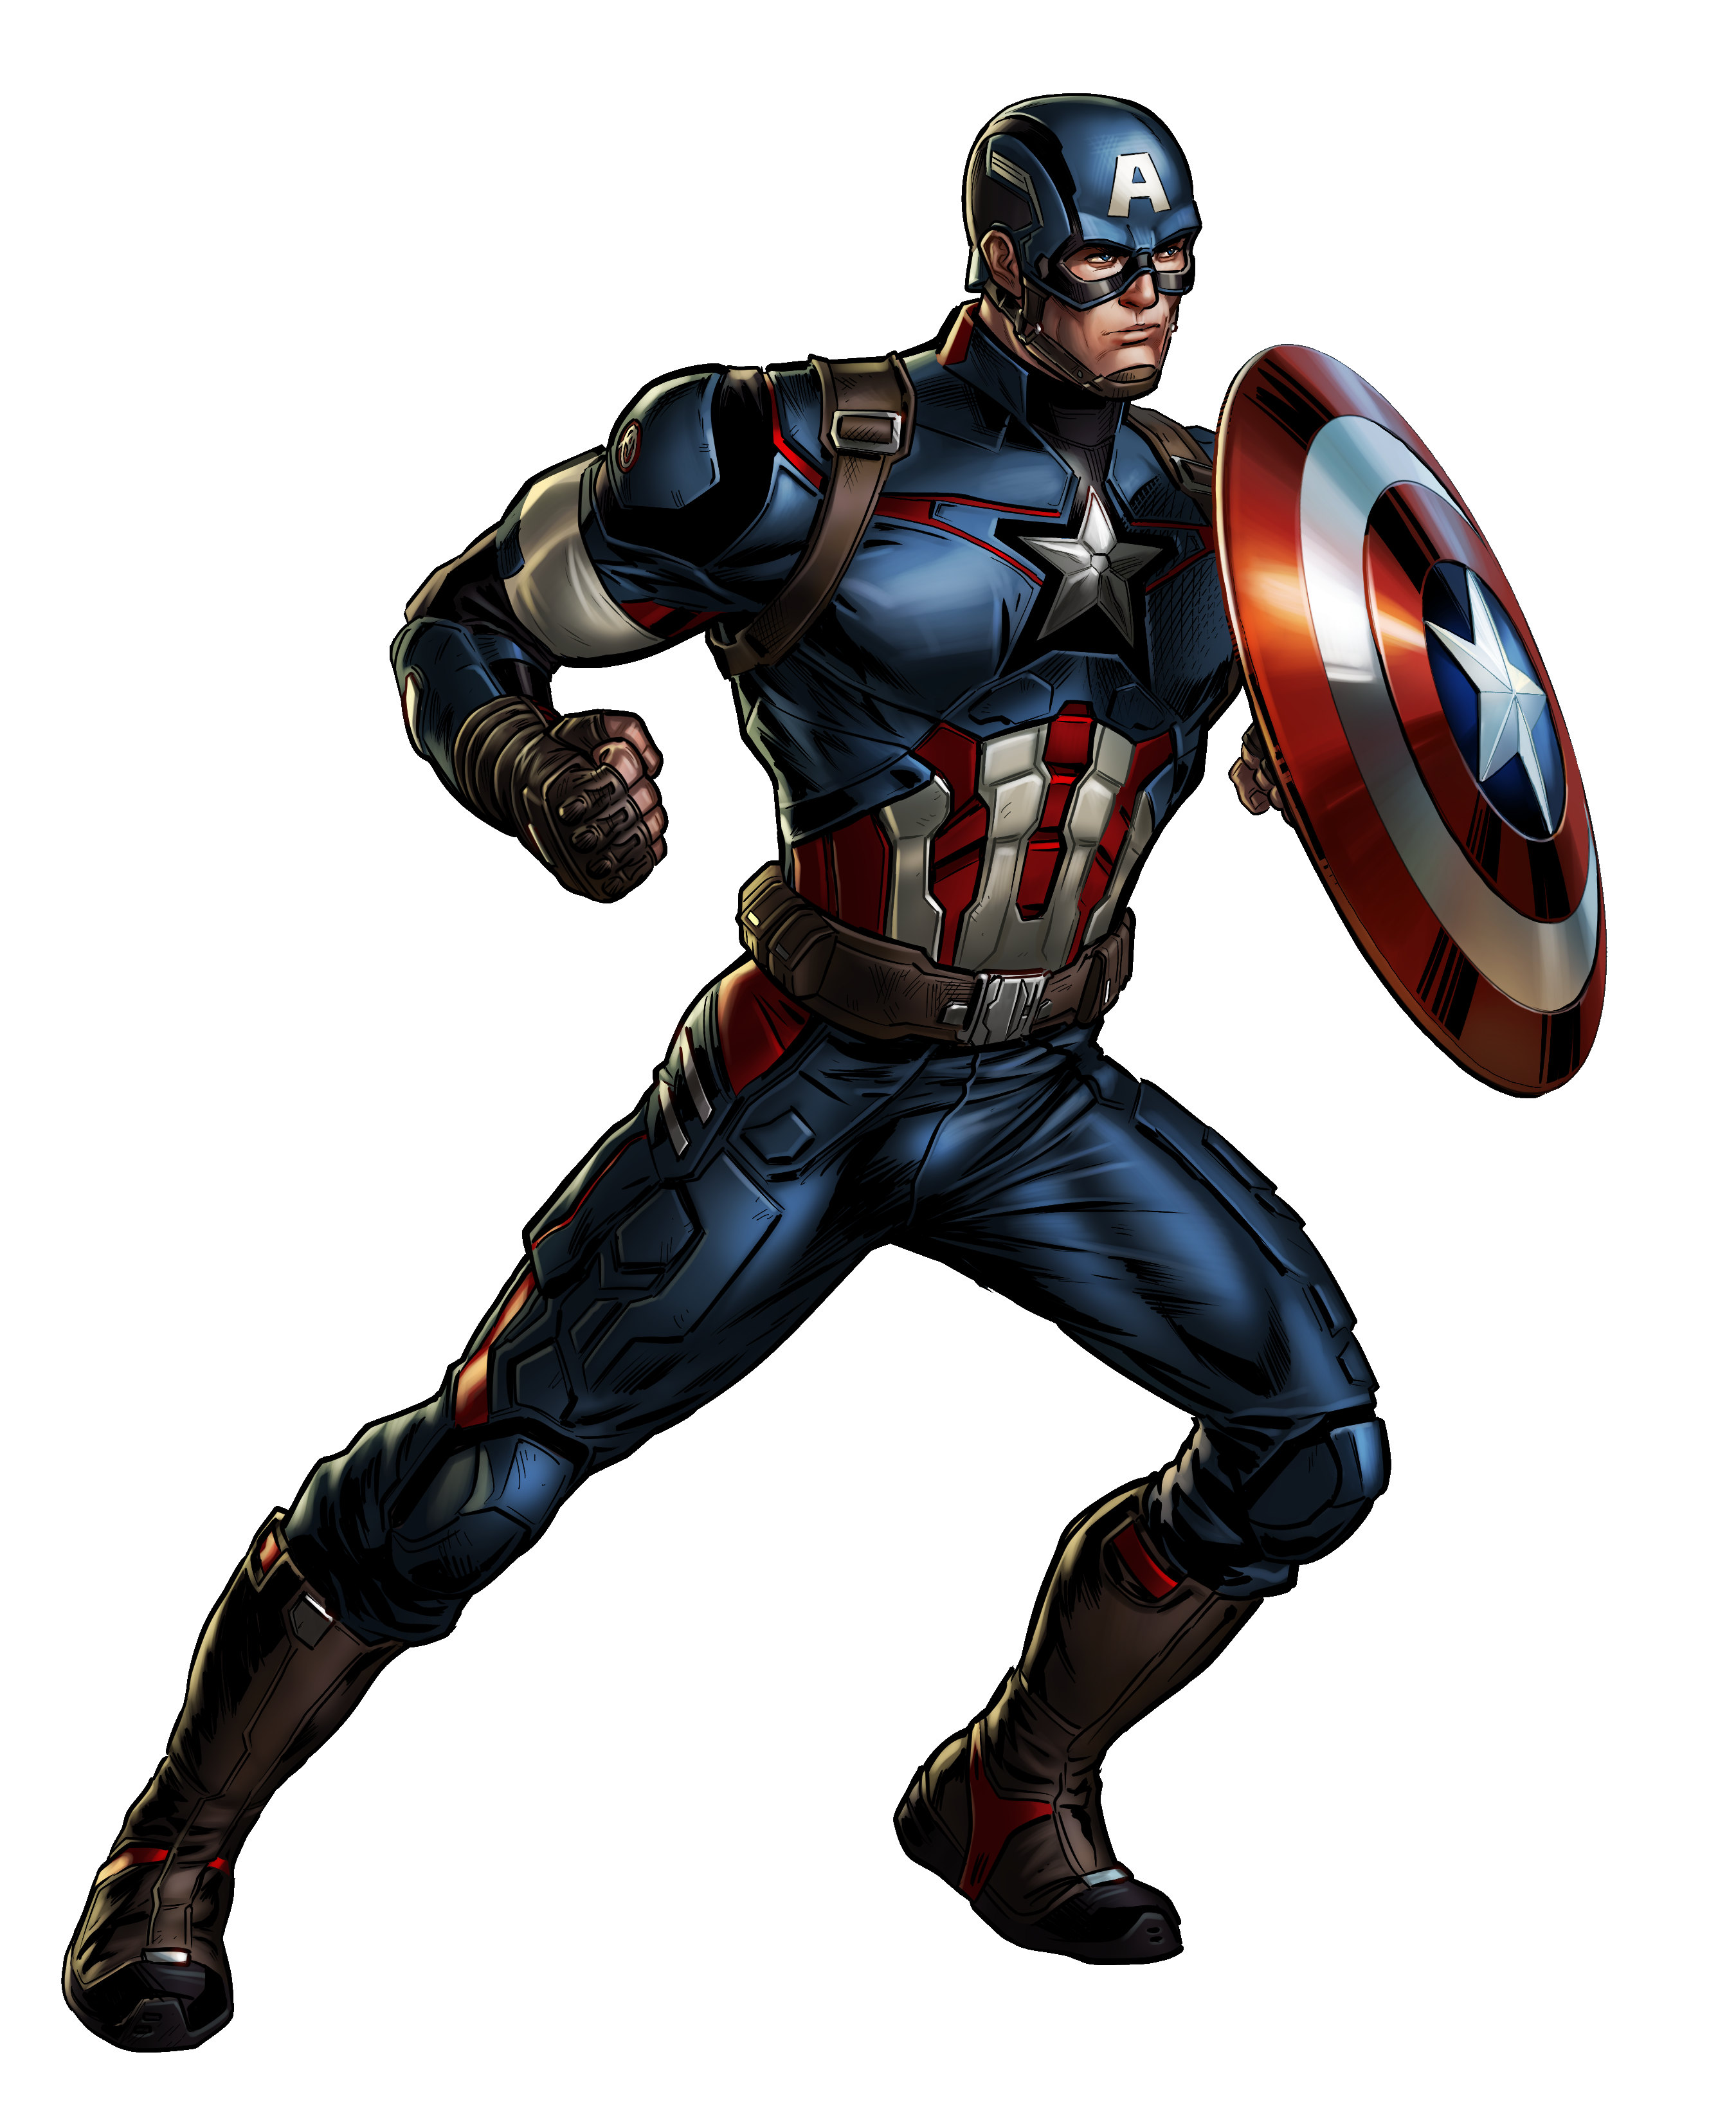 marvel avengers alliance 2 captain america by steeven7620 on deviantart. Black Bedroom Furniture Sets. Home Design Ideas